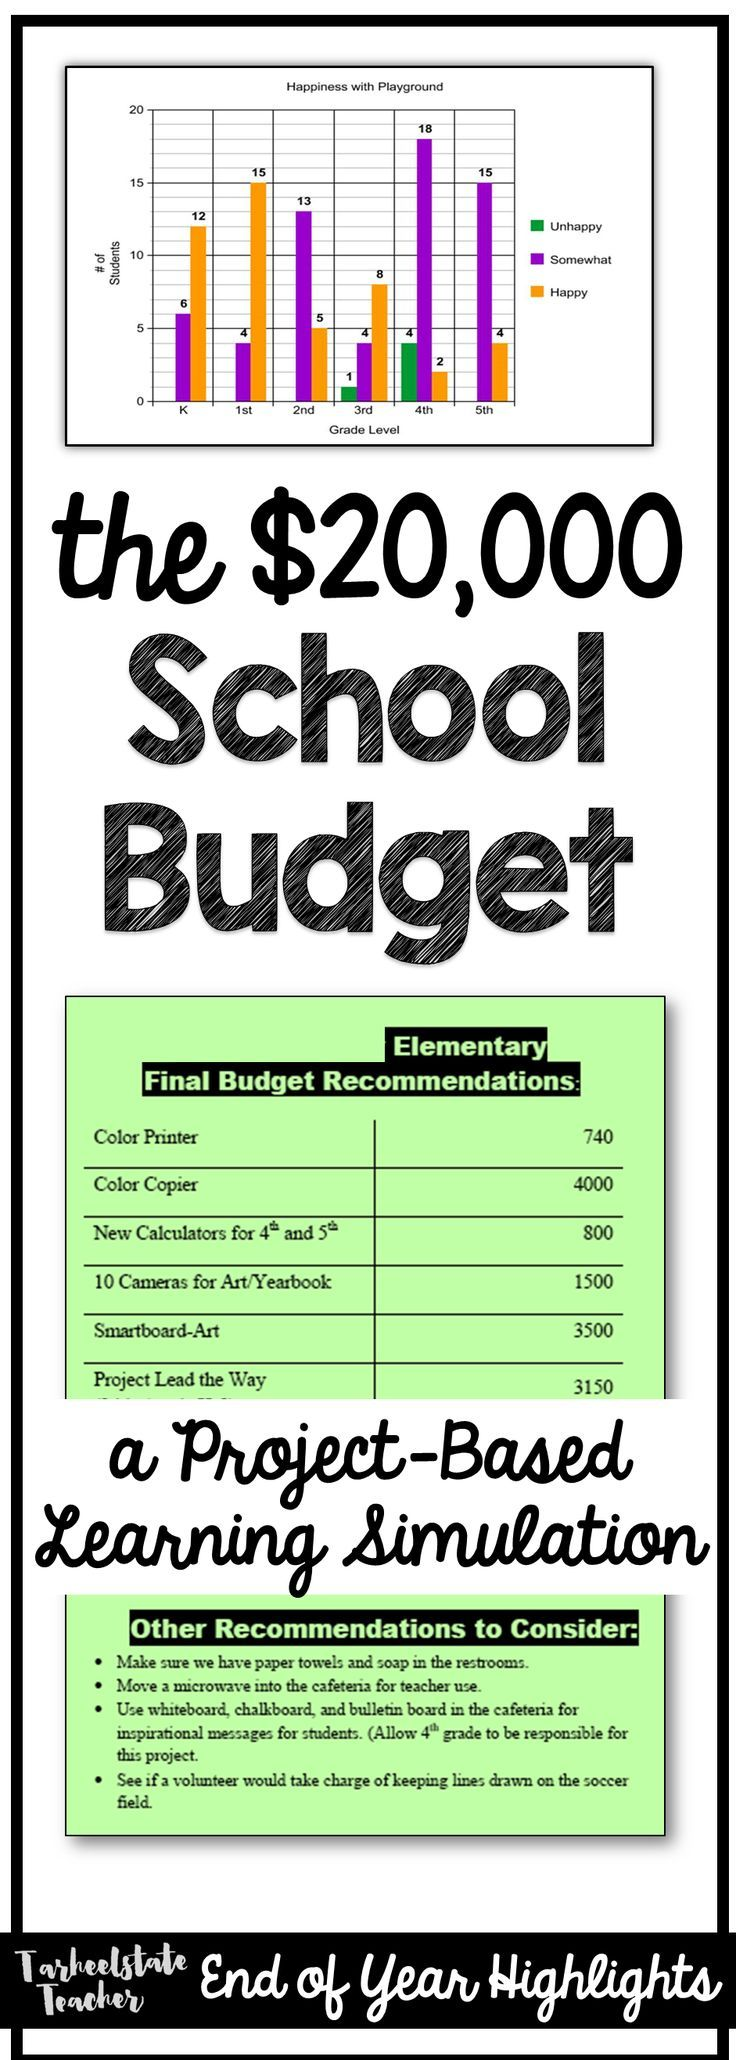 Project Based Learning Government Economics Social Studies Simulation for PBL; 4th and 5th graders figure out what to do with a $20,000 school budget in this PBL unit; read all about it!